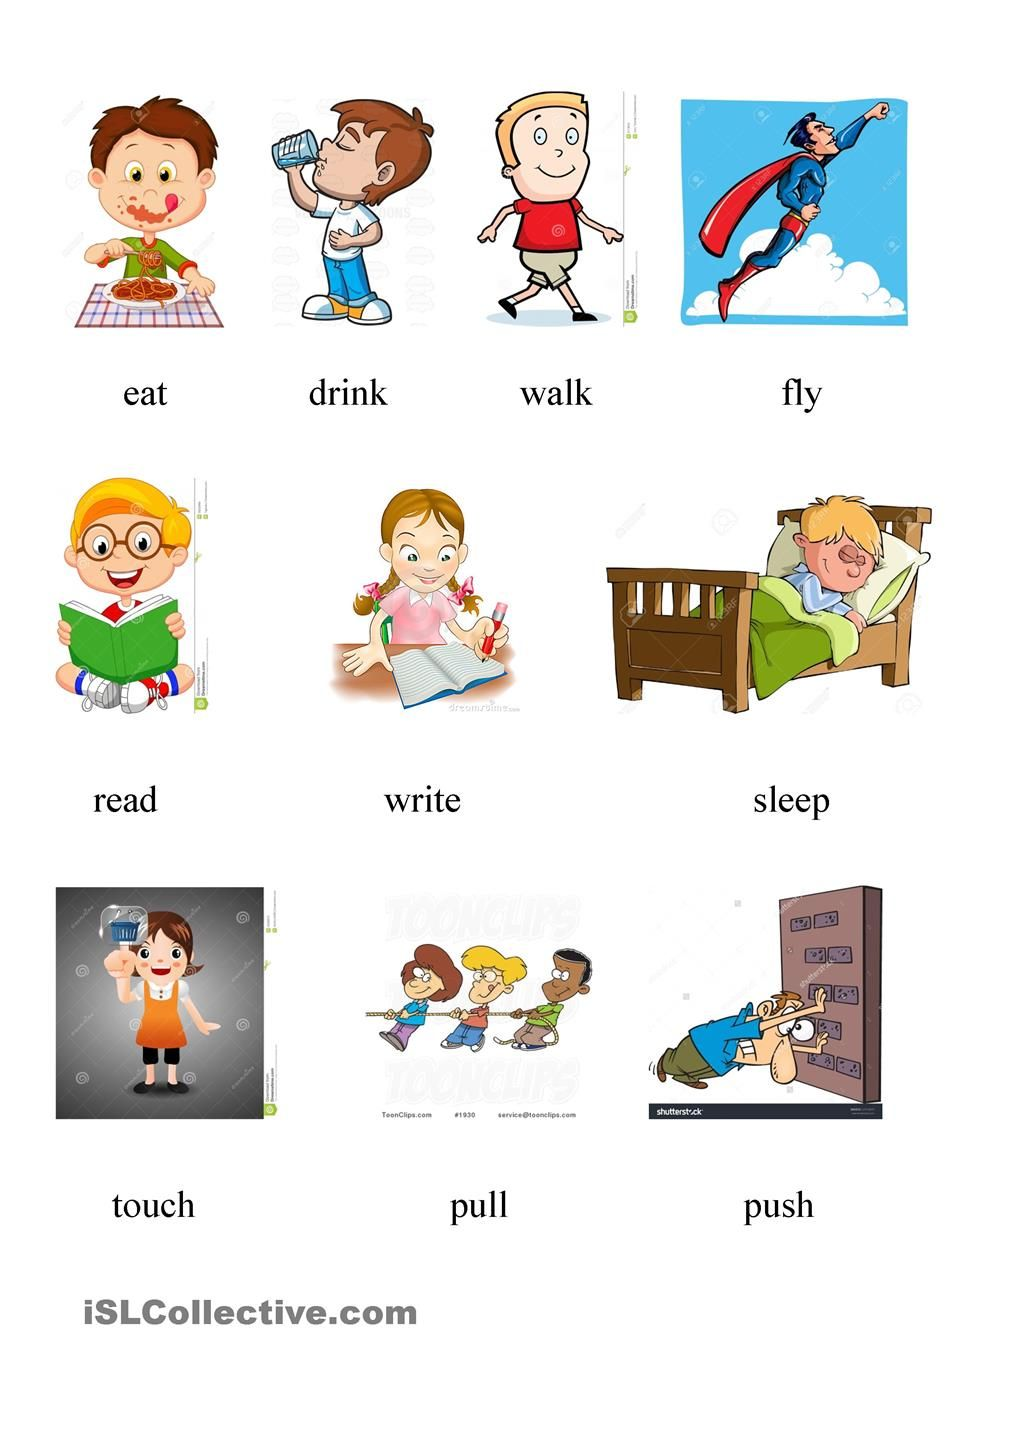 worksheet Push And Pull Worksheets For Kindergarten avtion verbs 2 pinterest action worksheets and adverbs worksheet free esl printable made by teachers